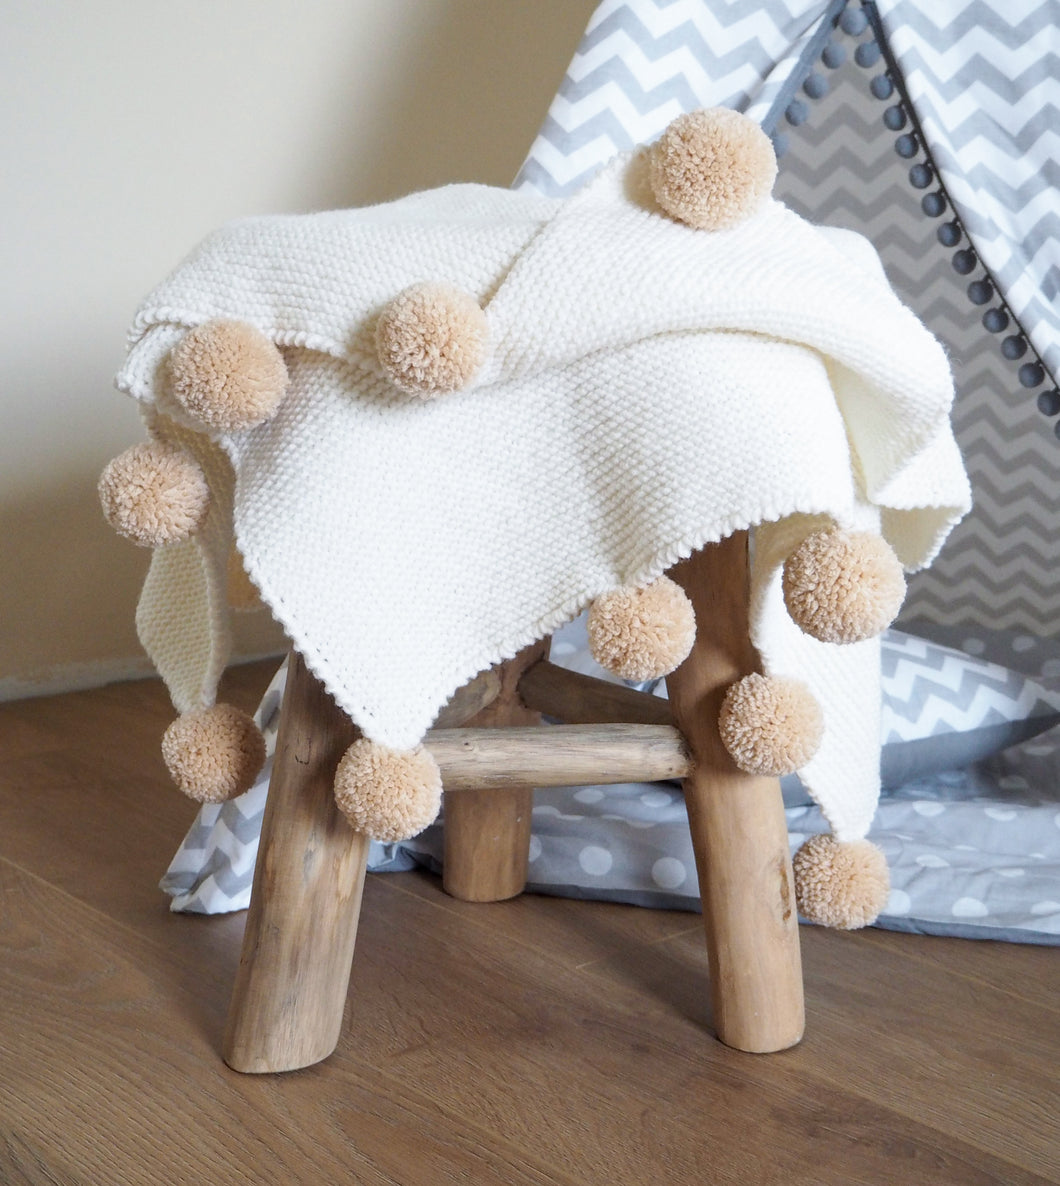 Baby knitted POM POM blanket (white)